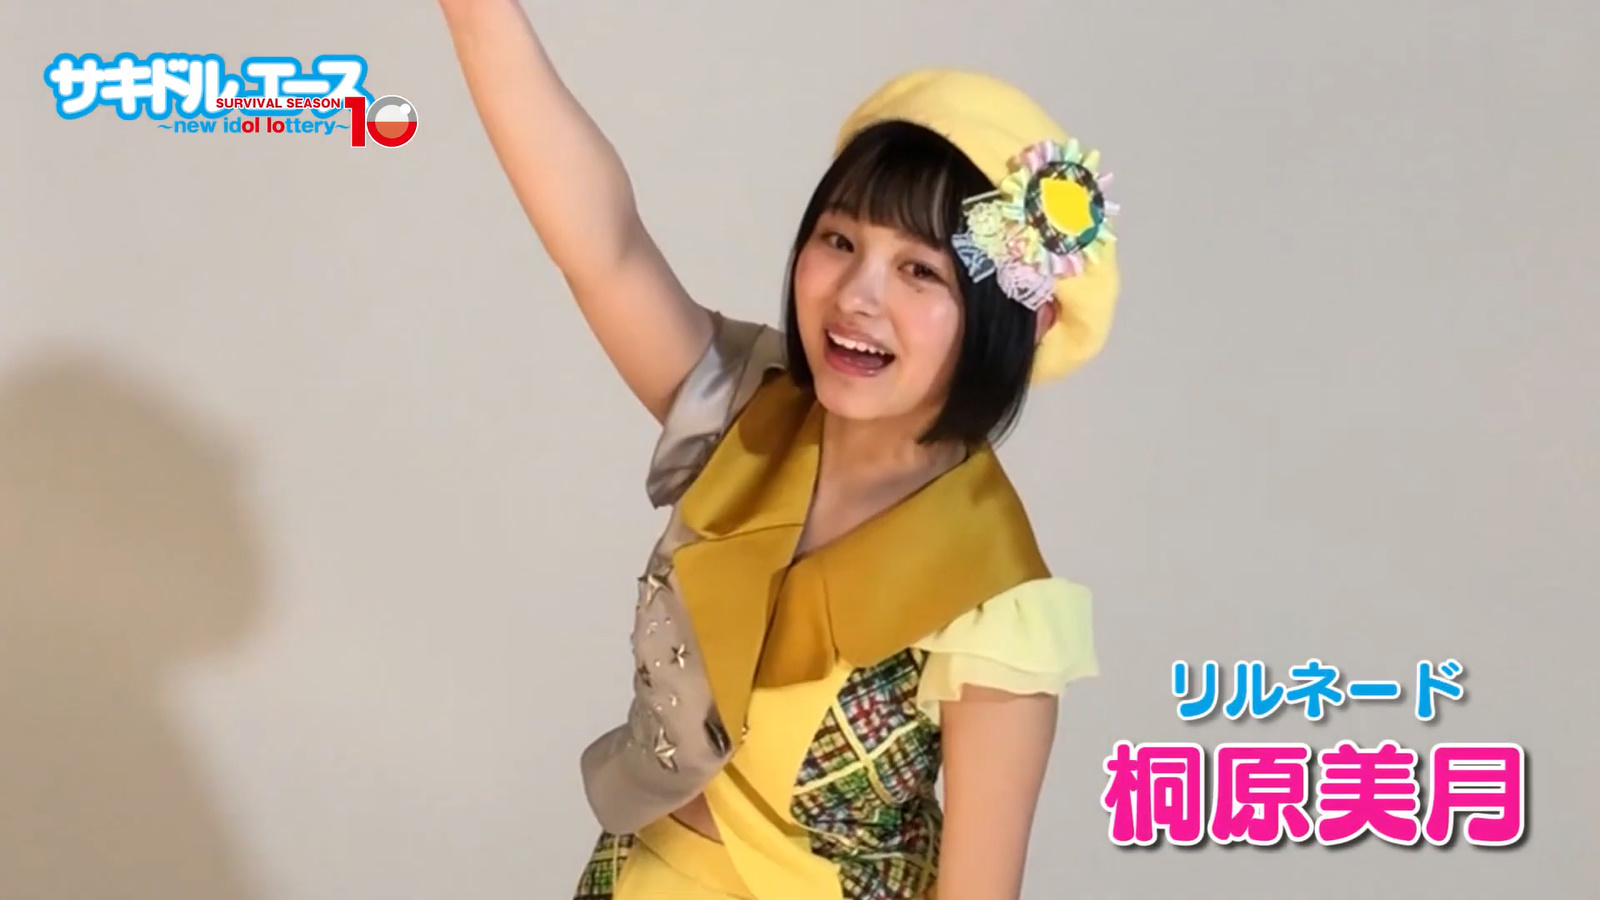 Sakidol Ace 10 Introduction Movie Capture of Swimsuit071